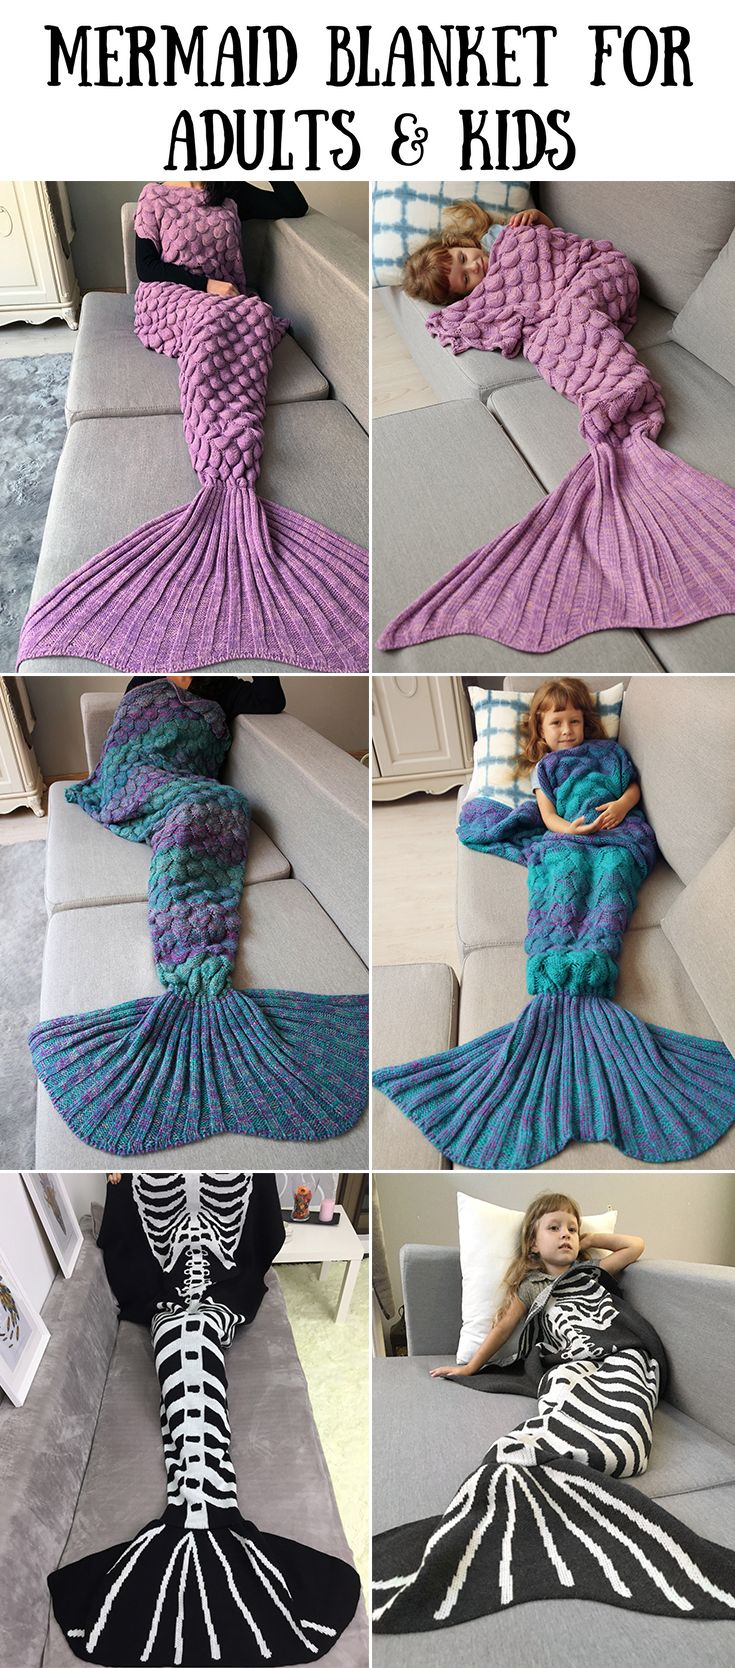 100+ Ultra-cozy Mermaid Blankets for Adults and Kids | Up to 75% off | #Blanket #Mermaid